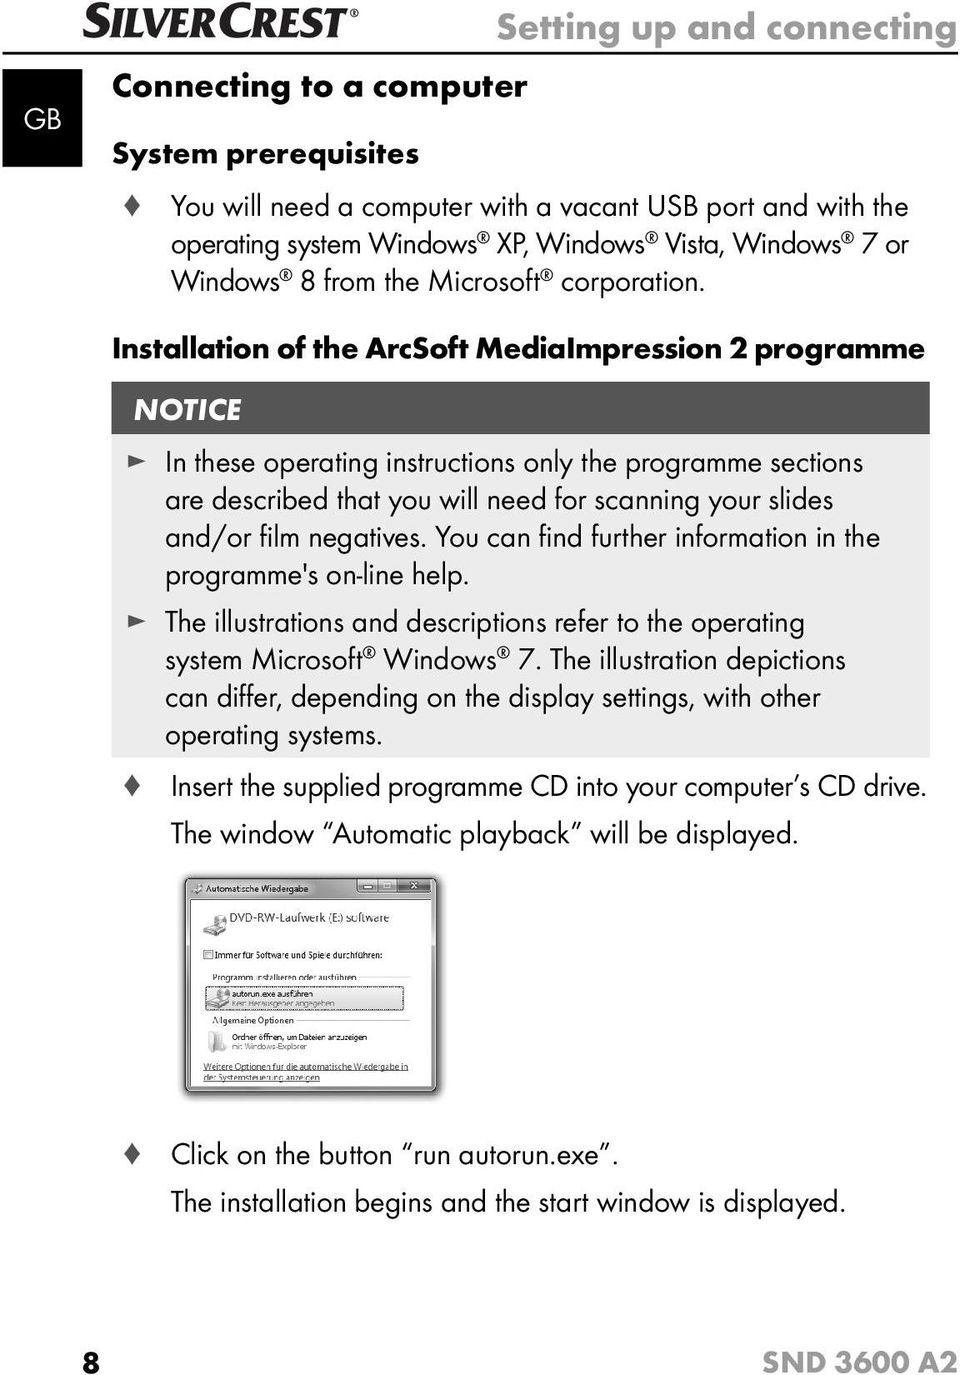 Installation of the ArcSoft MediaImpression 2 programme NOTICE In these operating instructions only the programme sections are described that you will need for scanning your slides and/or fi lm